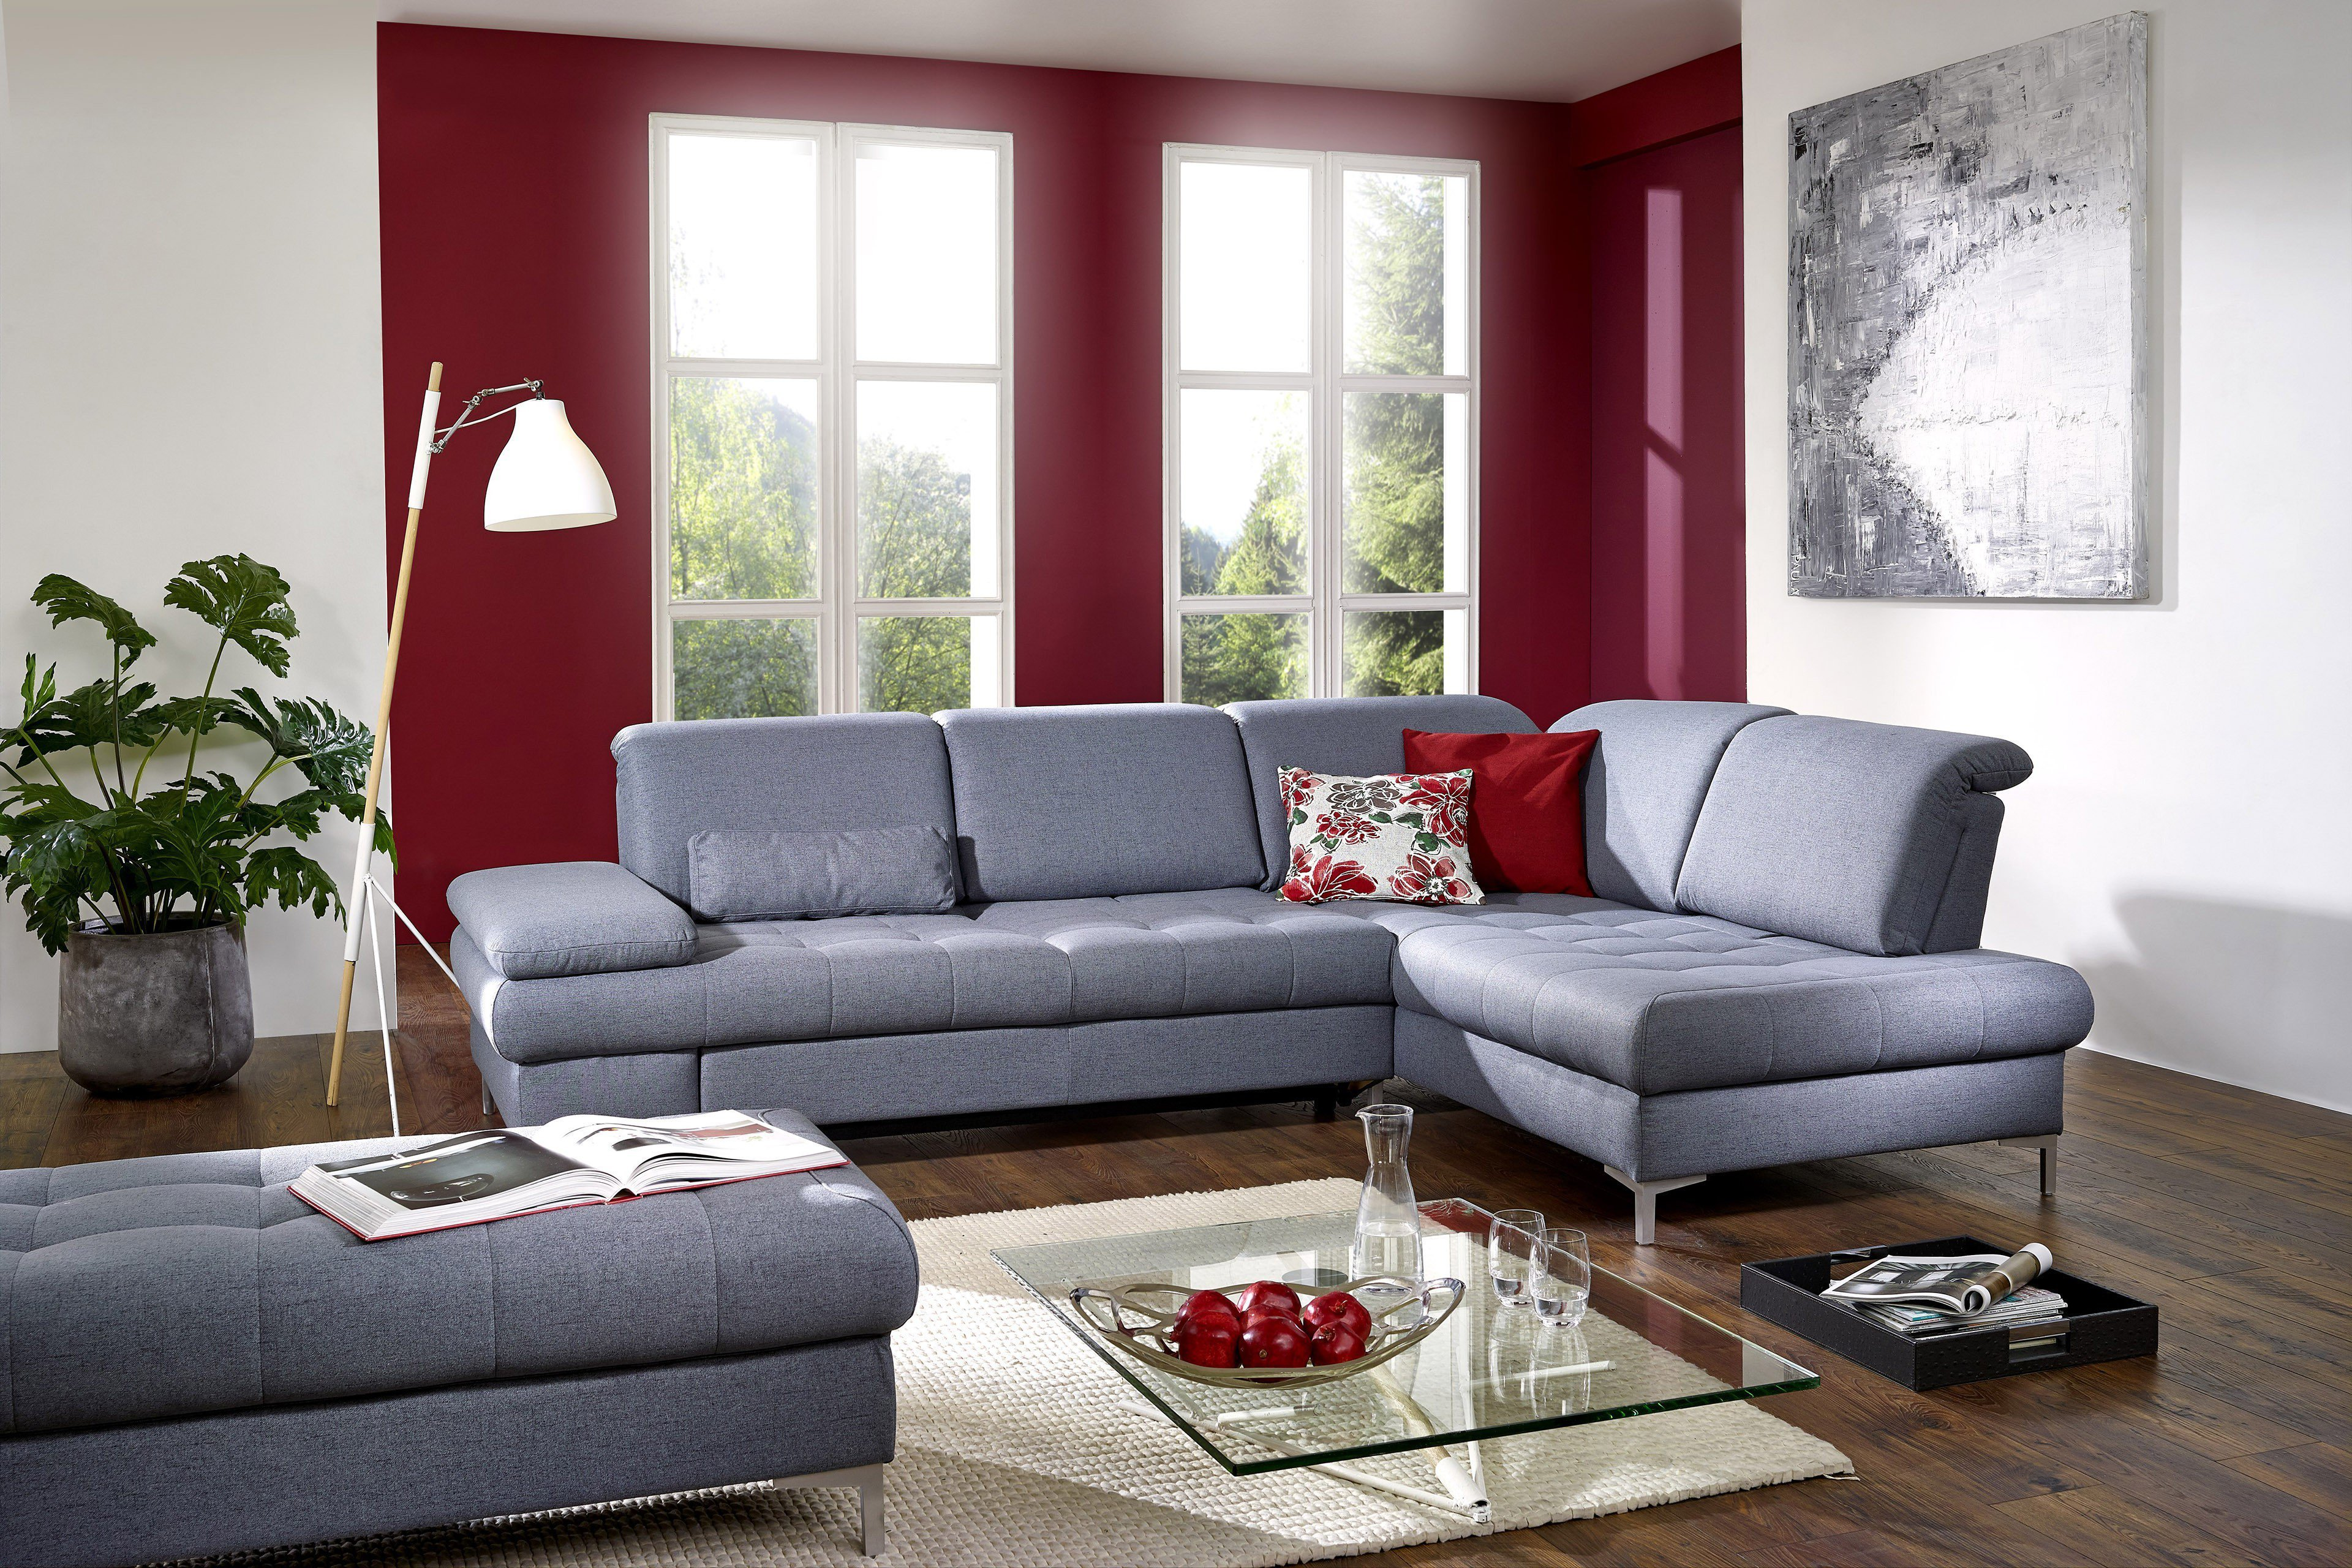 dietsch family relax 3 ecksofa graublau m bel letz ihr. Black Bedroom Furniture Sets. Home Design Ideas